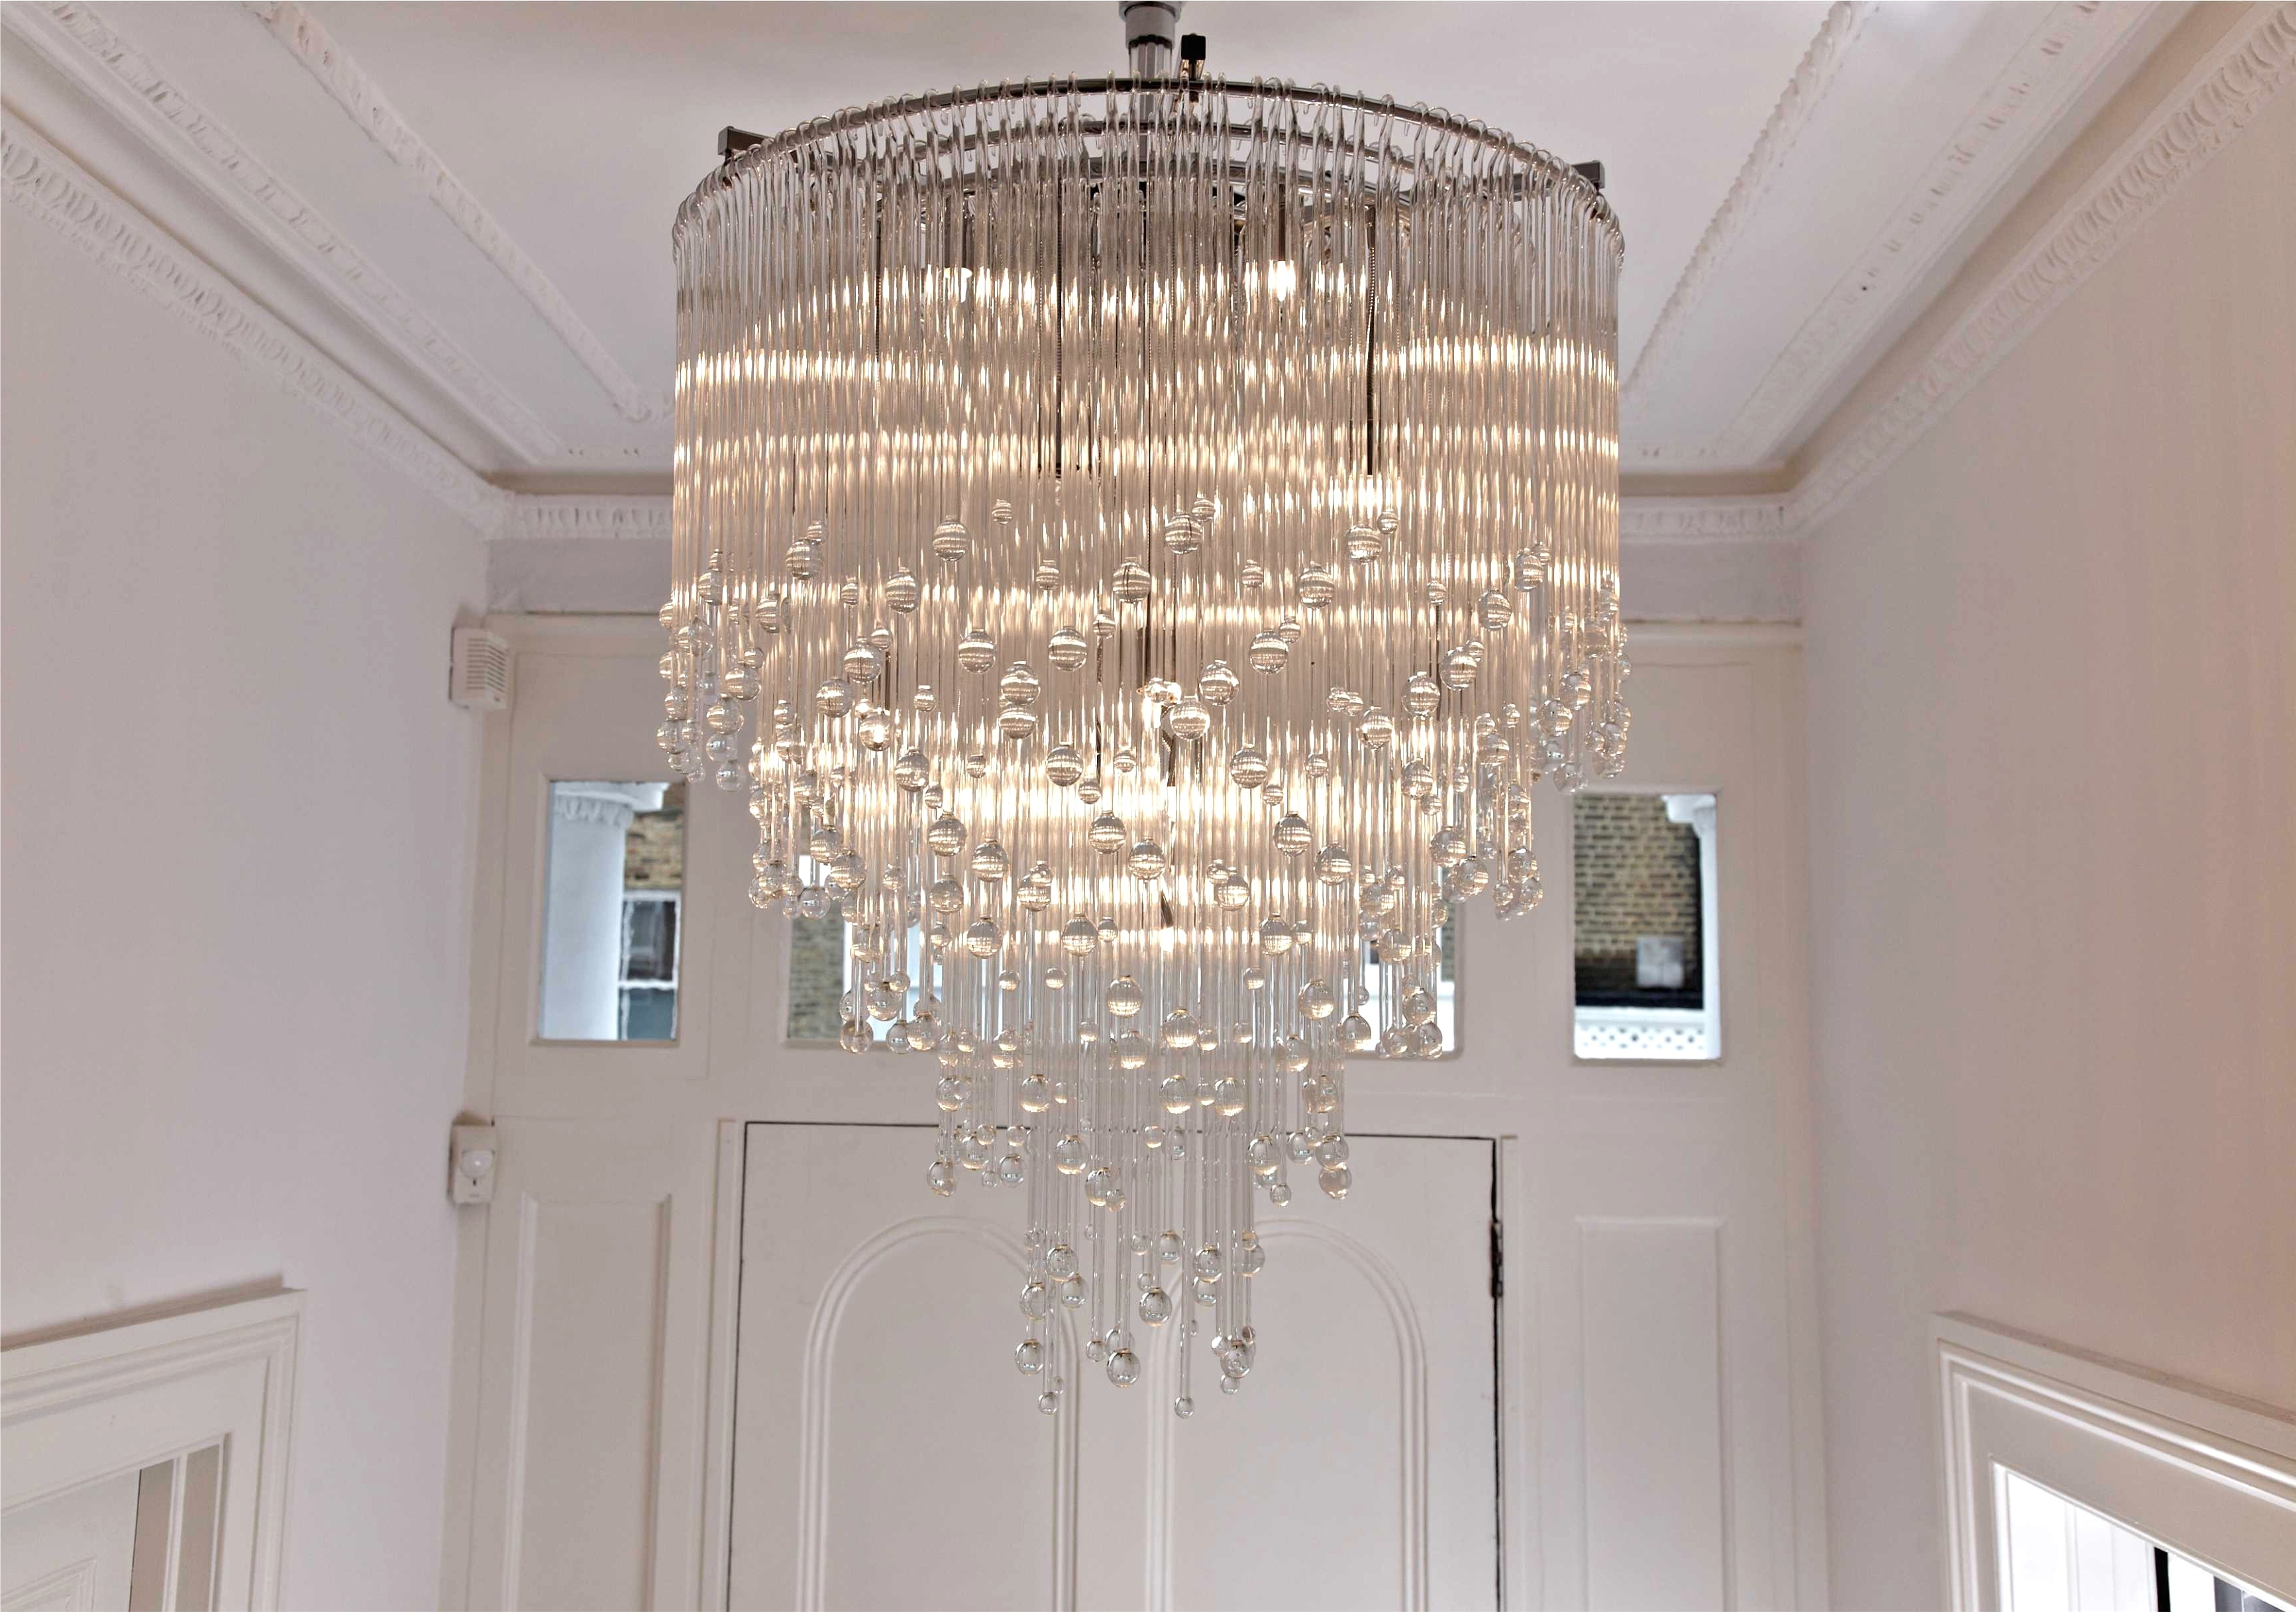 2017 Extra Large Modern Chandeliers Within Chandeliers Design : Amazing Extra Large Modern Chandeliers With Uk (View 2 of 15)